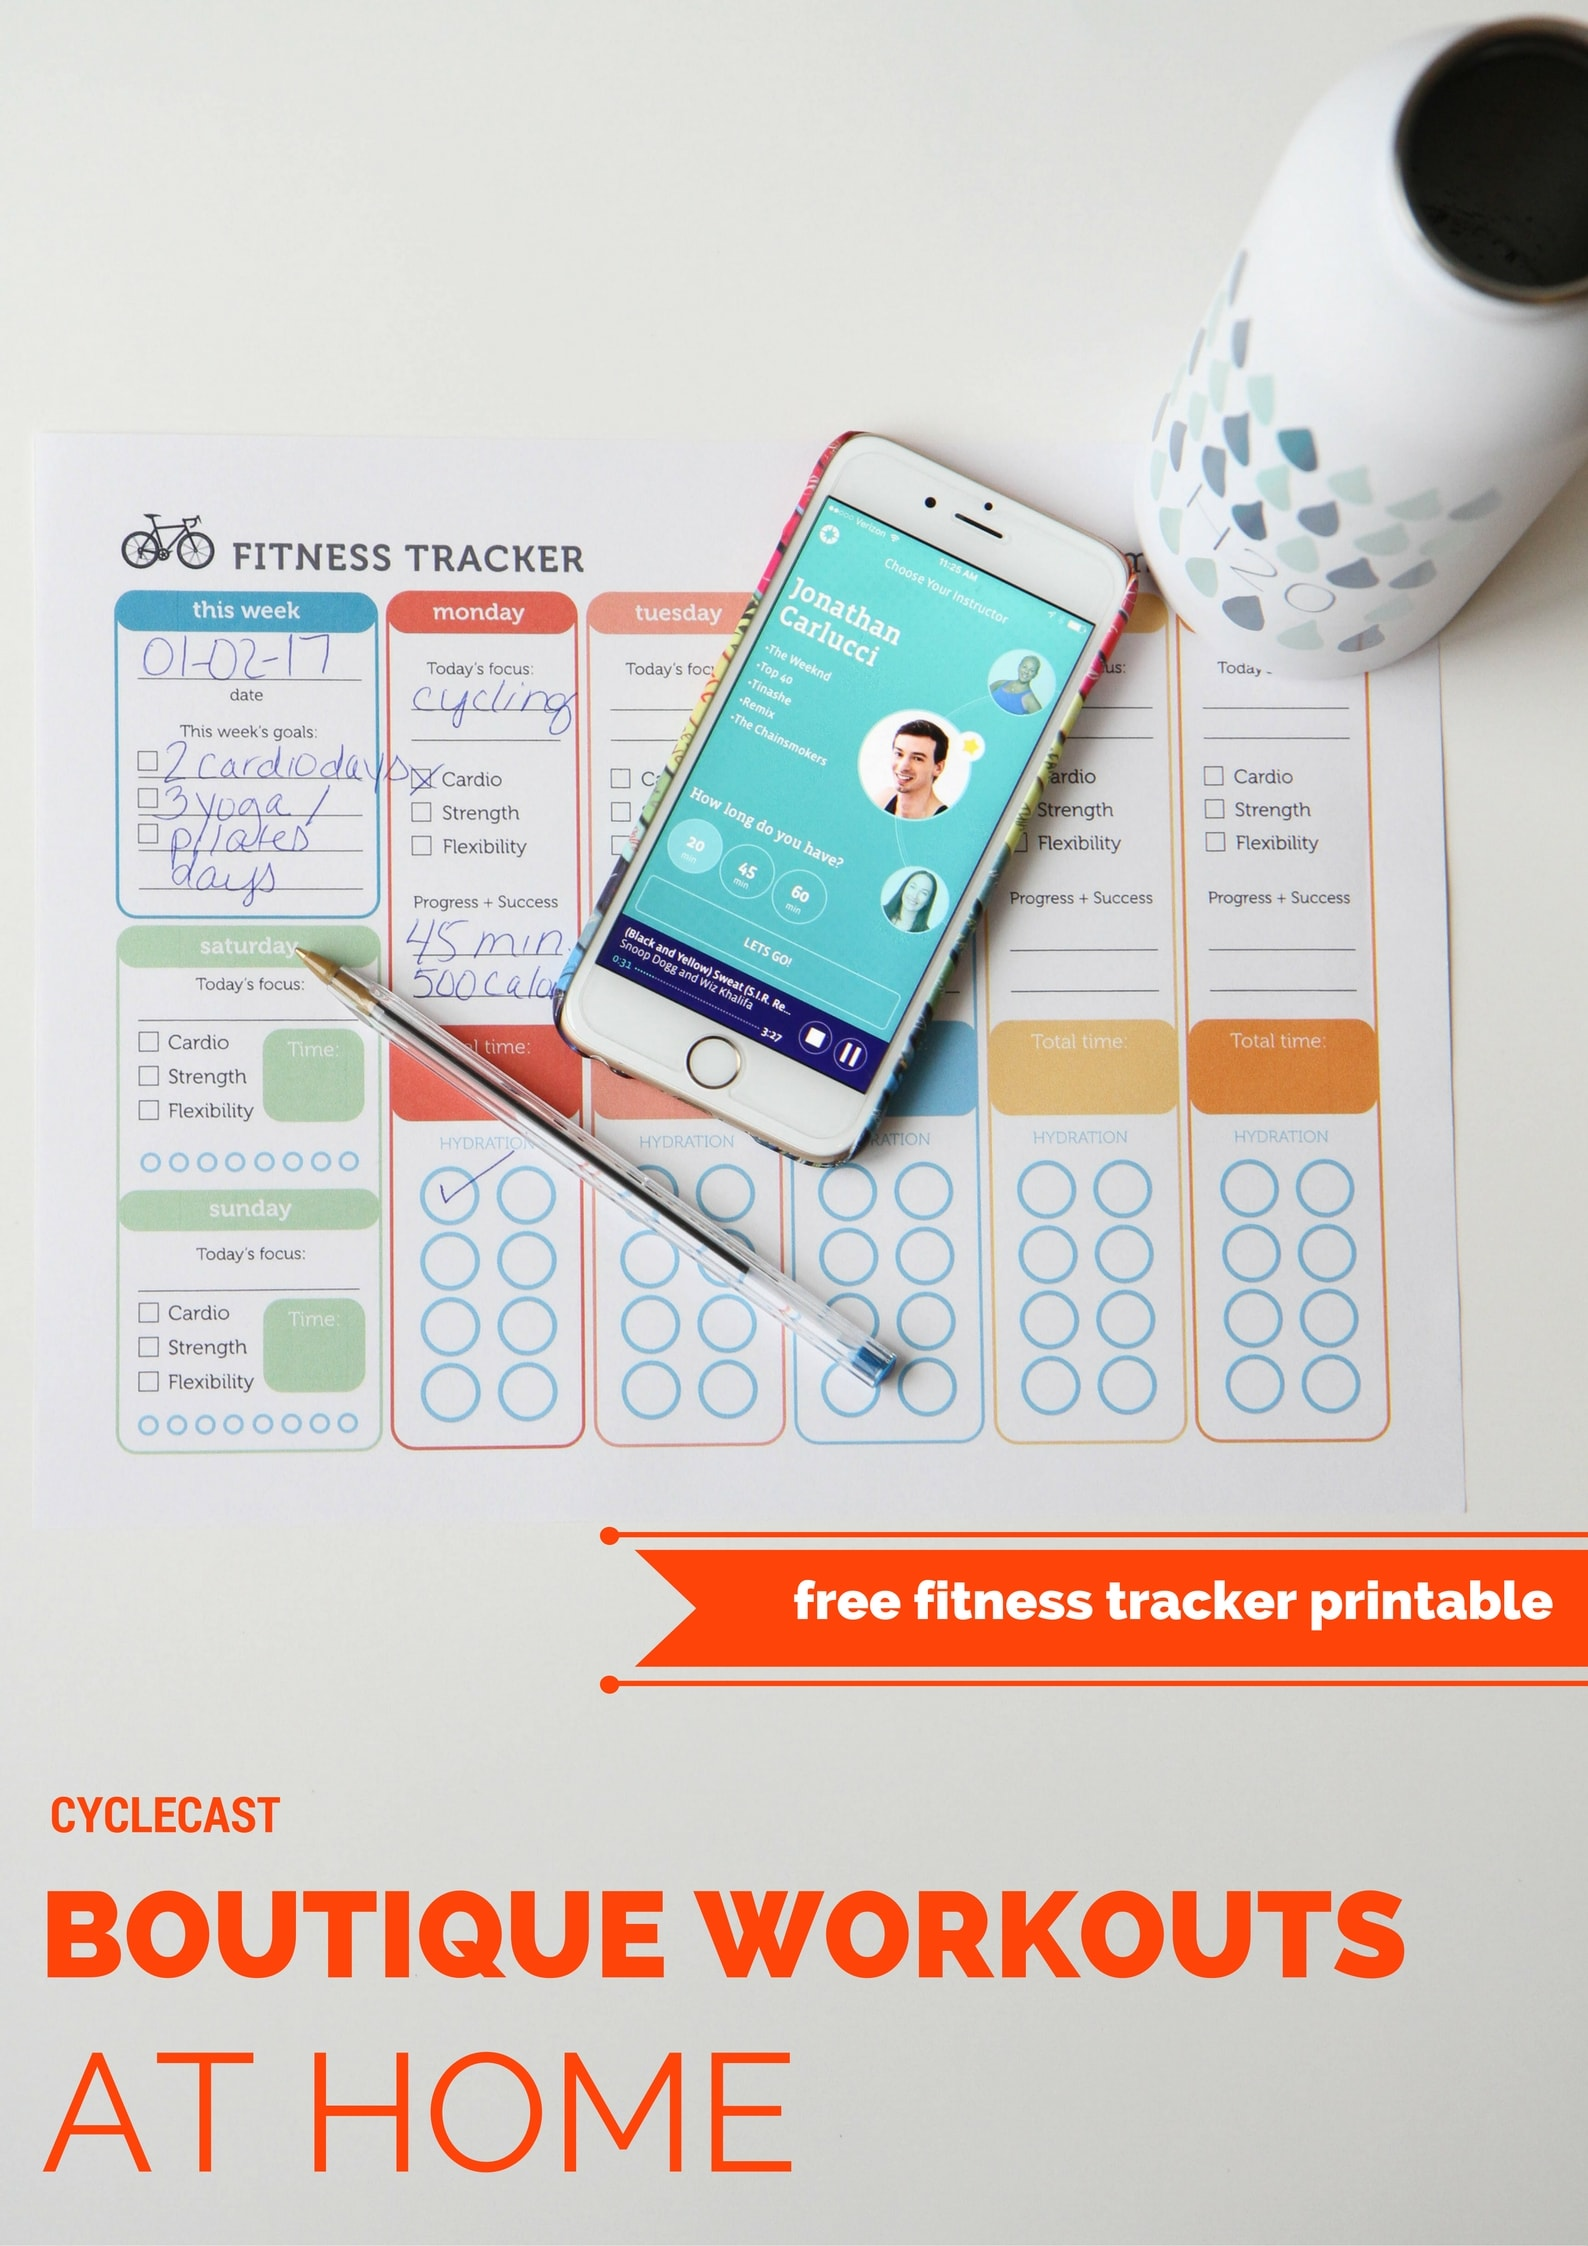 Boutique Workouts At Home (FREE Printable Fitness Tracker) from MomAdvice.com